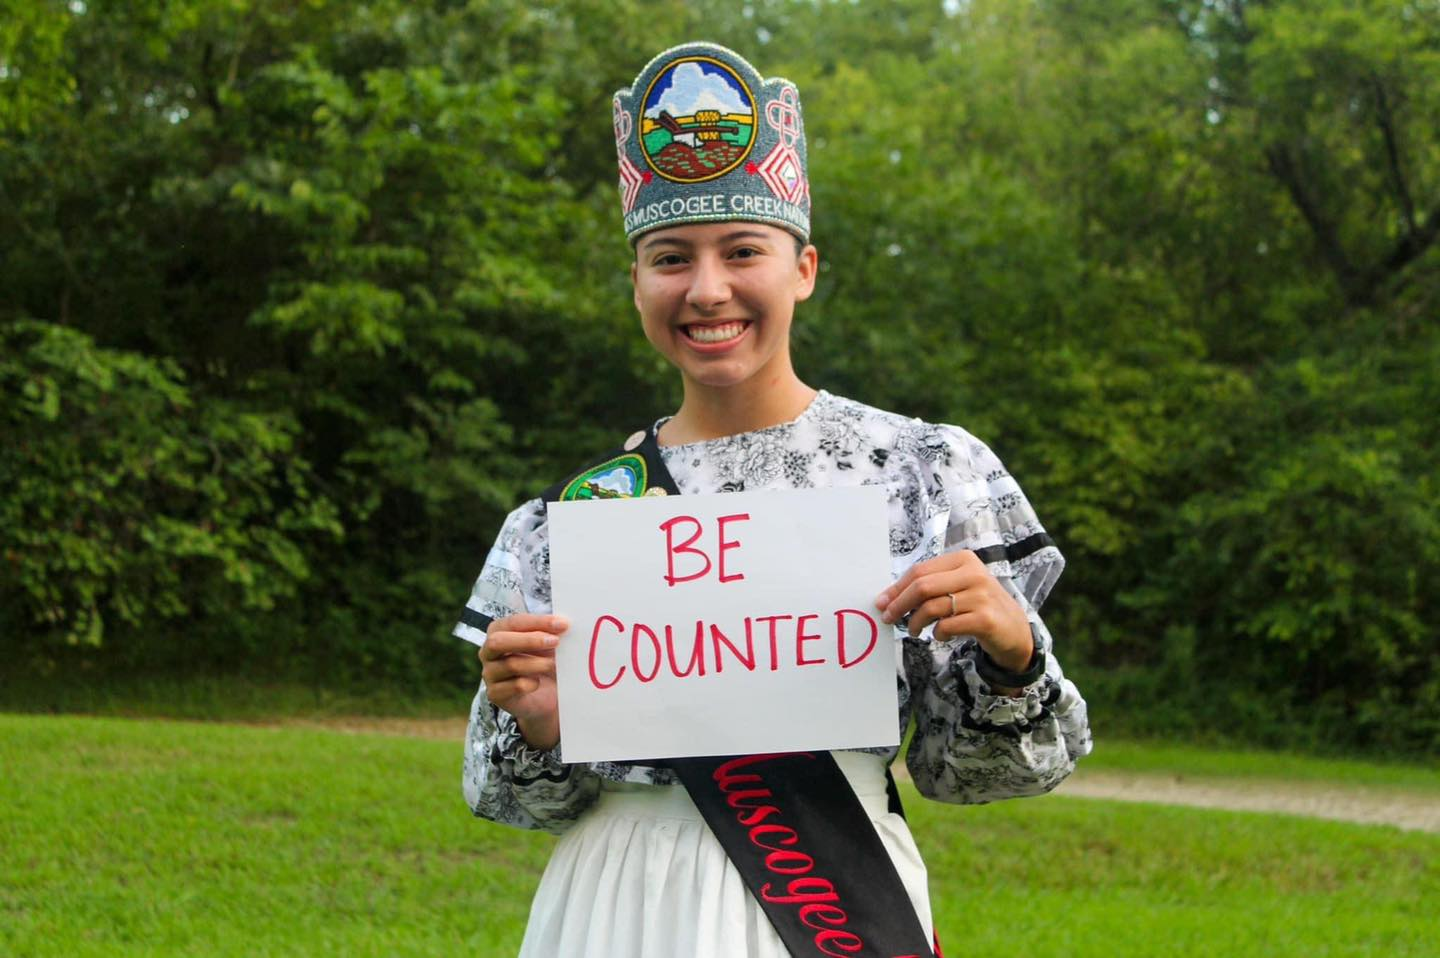 be counted intiative